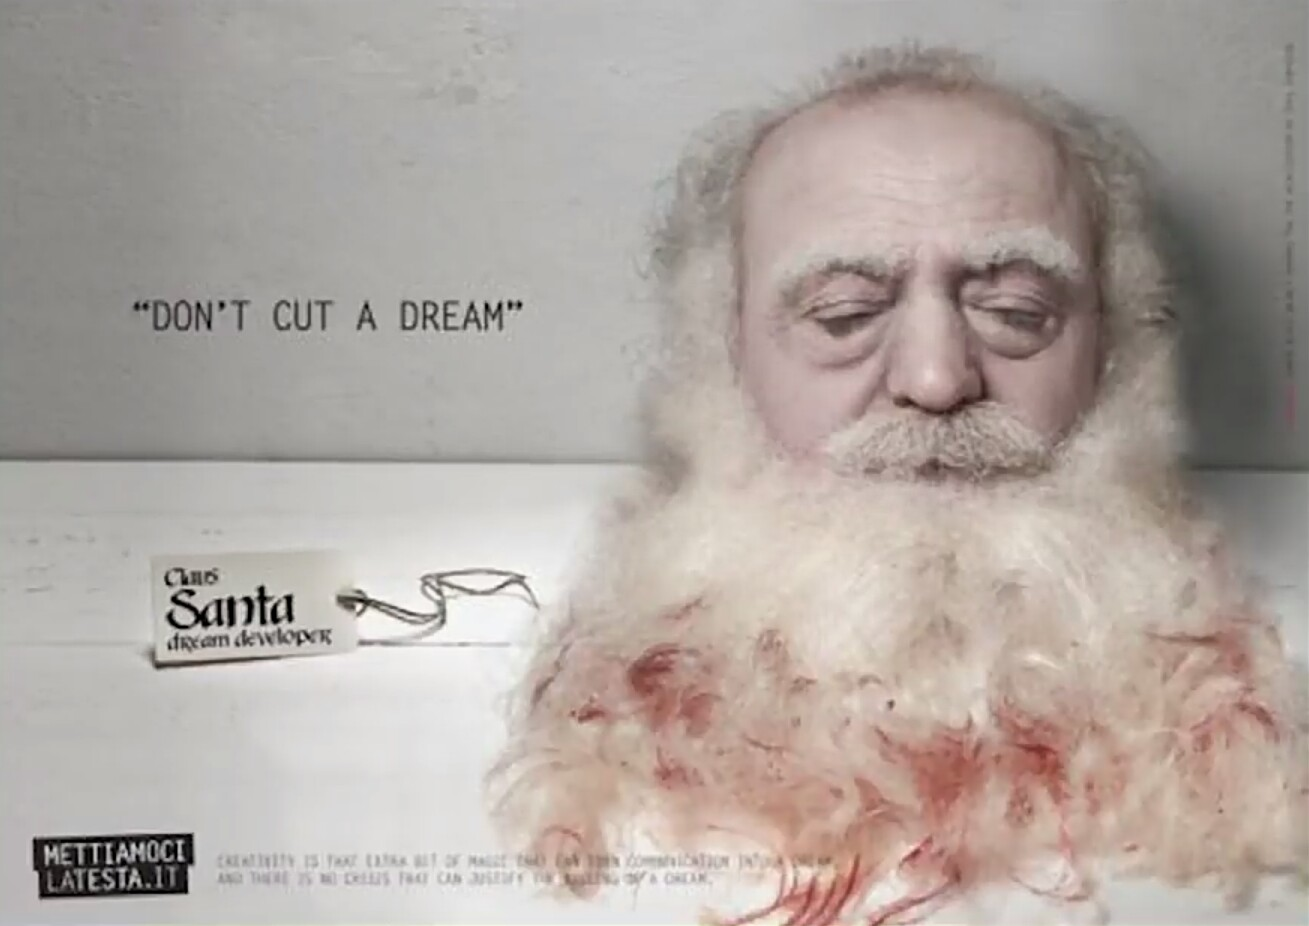 30 Powerful Social Issue Ads Will Make You Think Twice